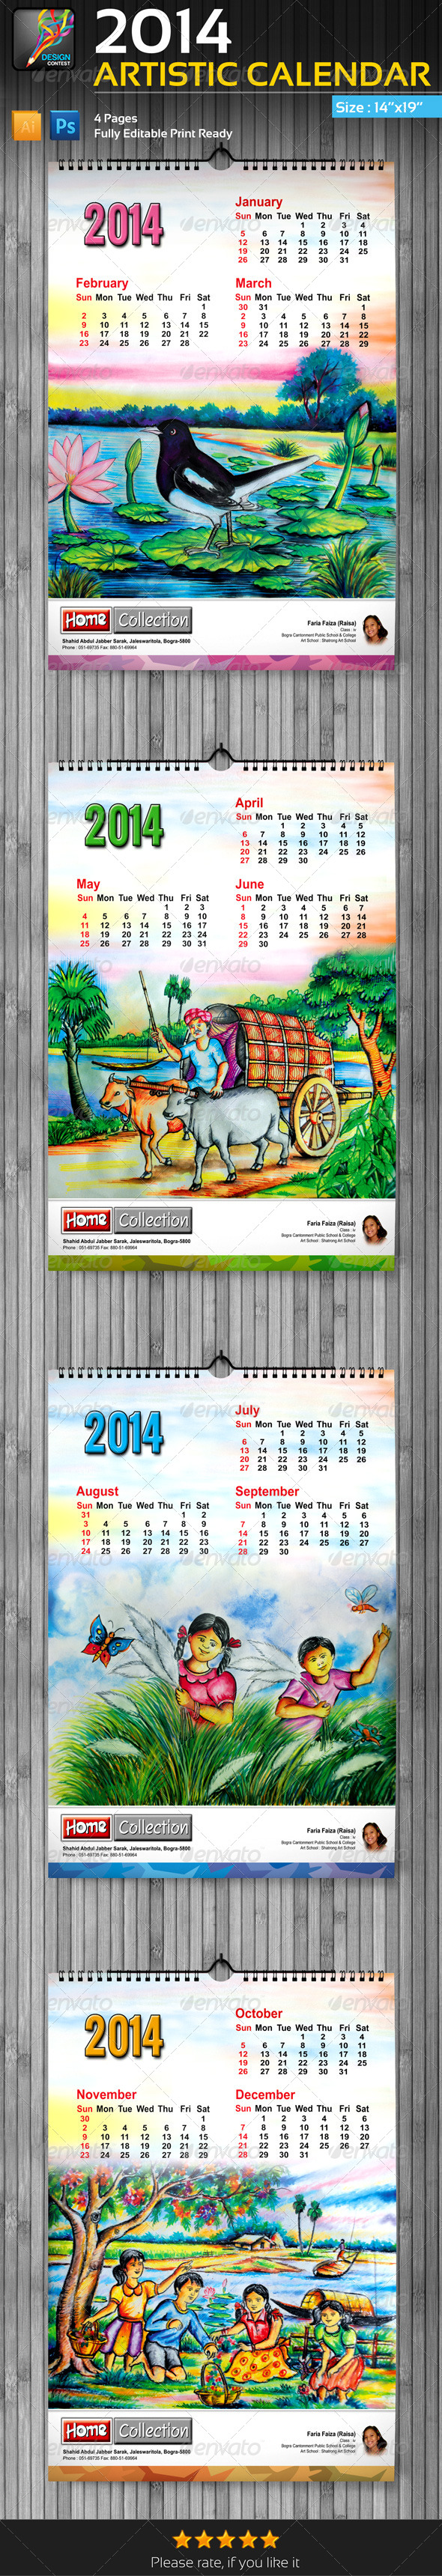 GraphicRiver 2014 Artistic Wall Calendar 4 Pages 6405885